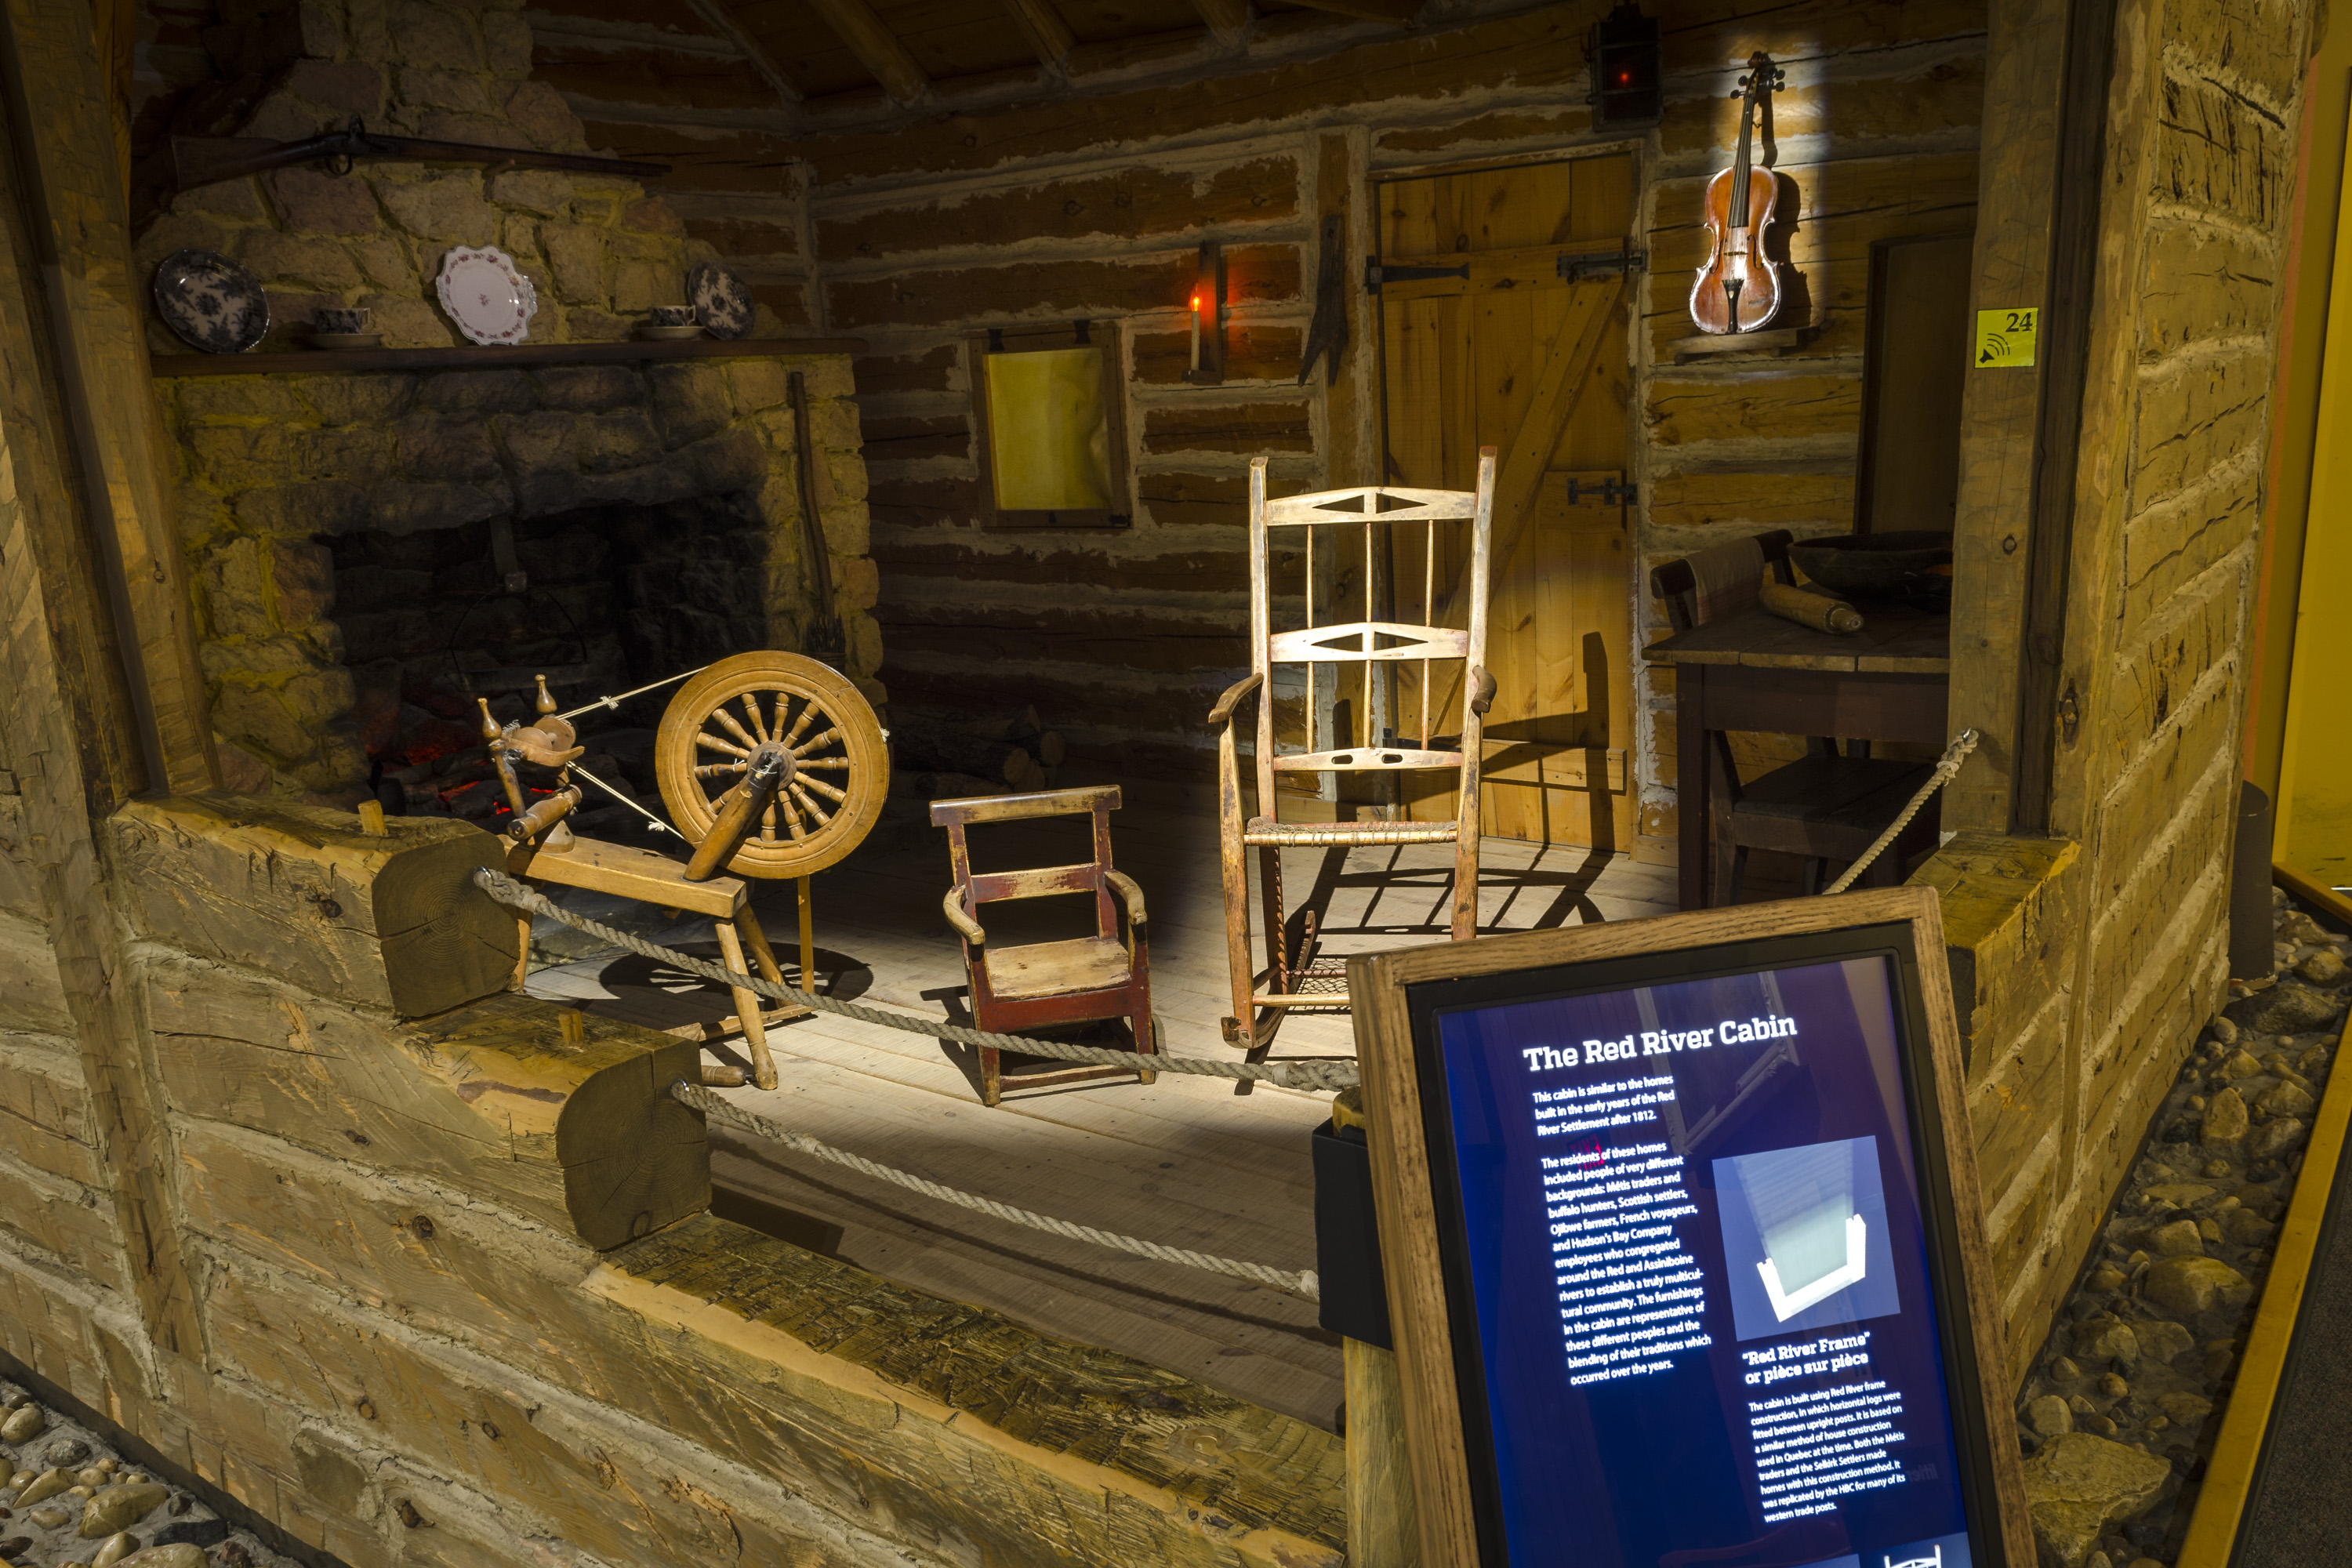 Marvelous photograph of The Log Cabin exhibit after renewal. The Log Cabin represents the  with #614A1C color and 3000x2000 pixels